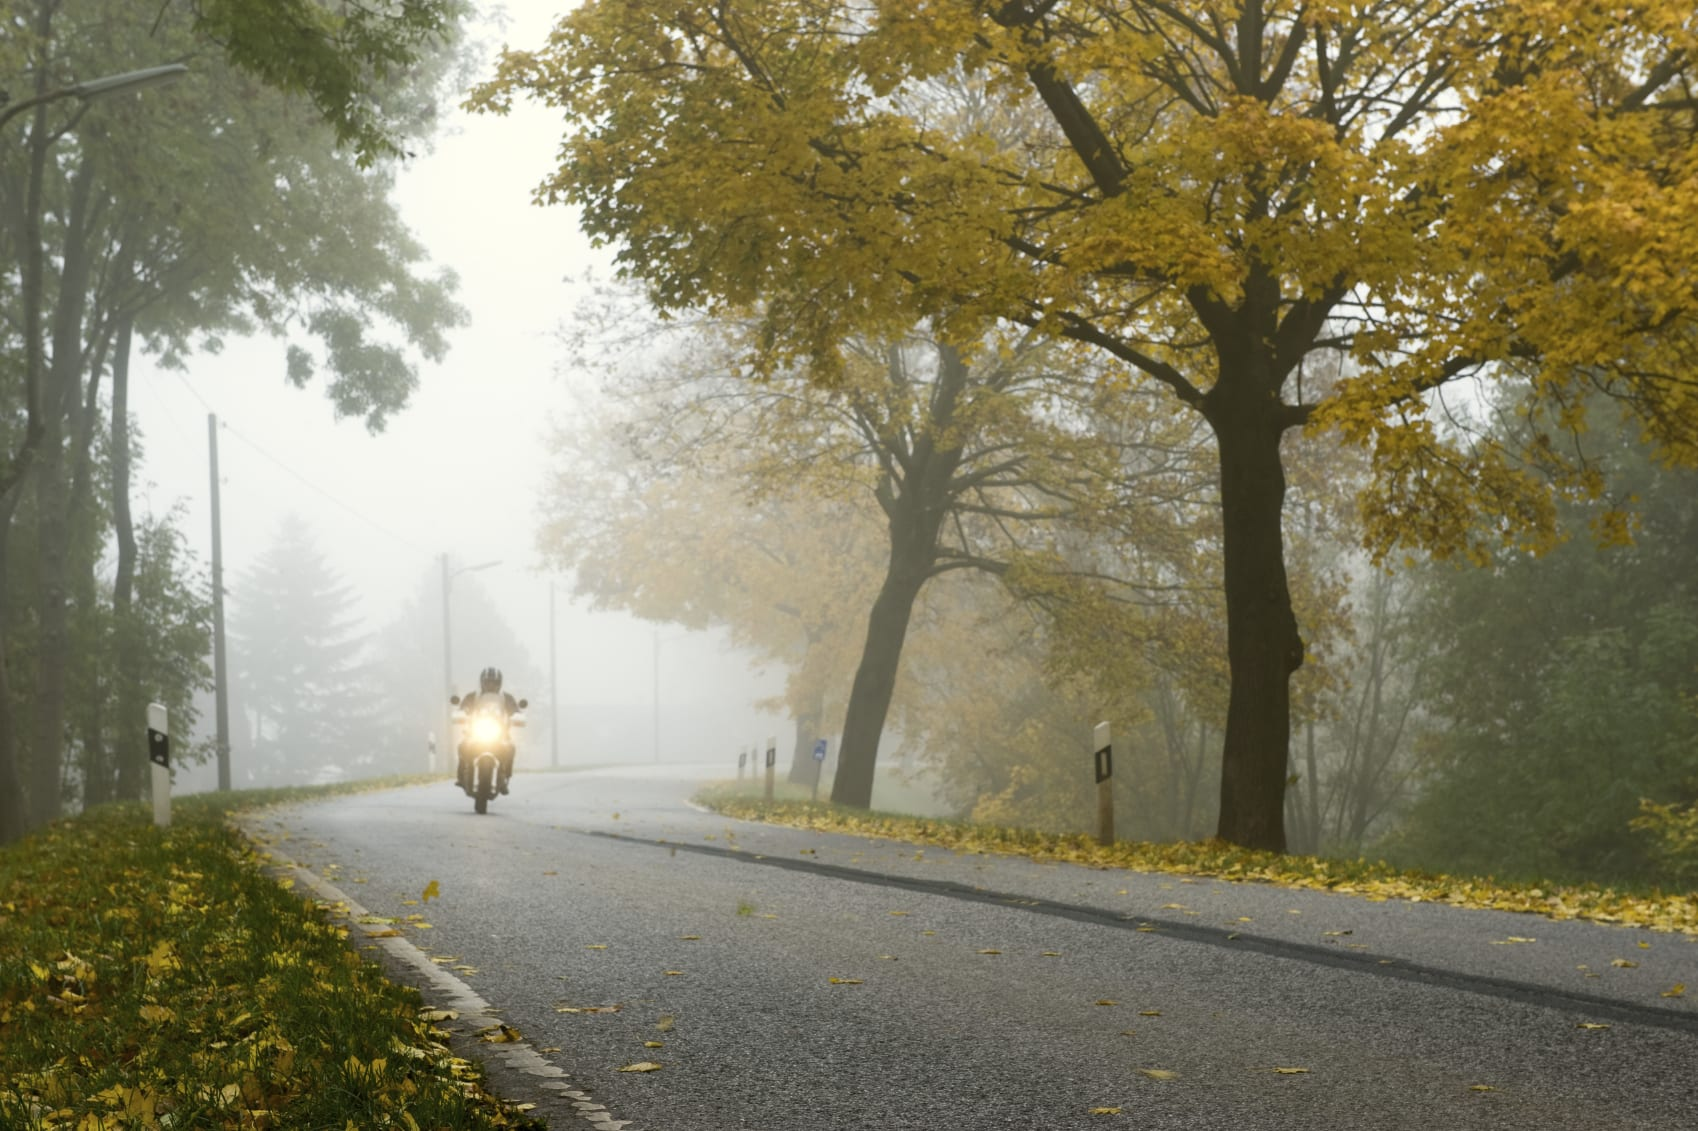 Motorcyclist Riding Motorcycle On A Beautiful Rural Road